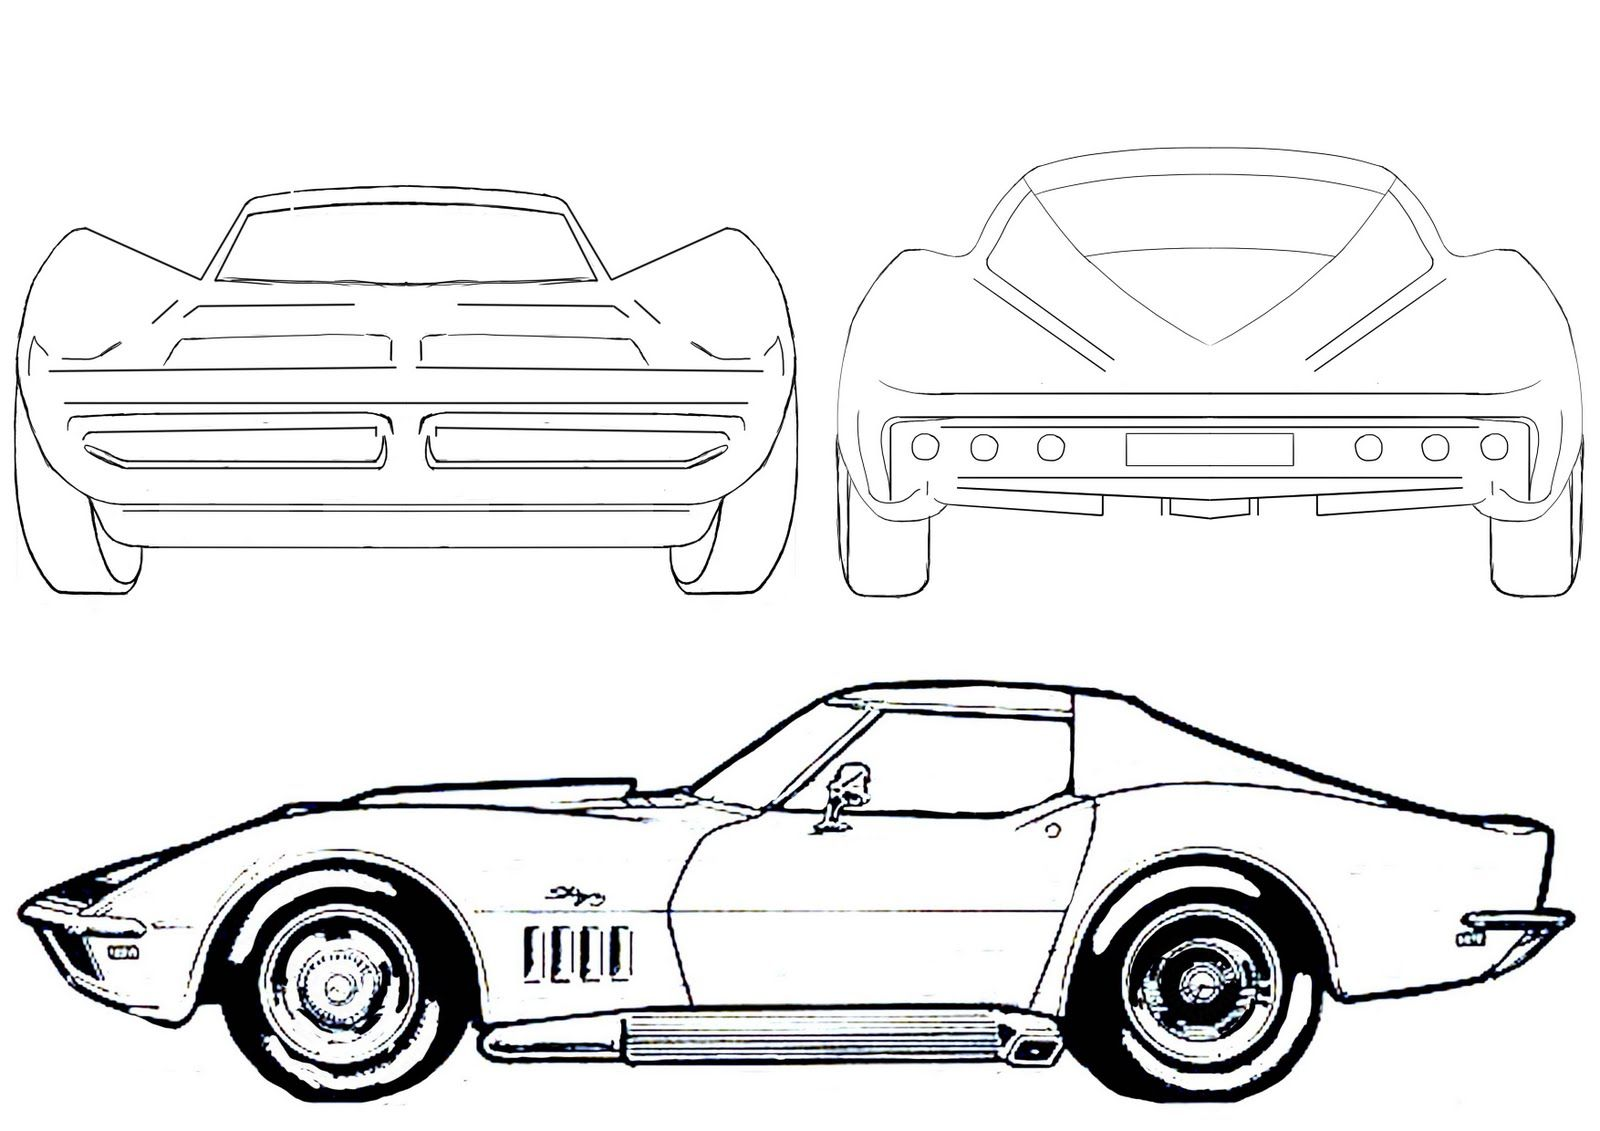 car drawings outline - Google Search | drawing | Pinterest | Car ...